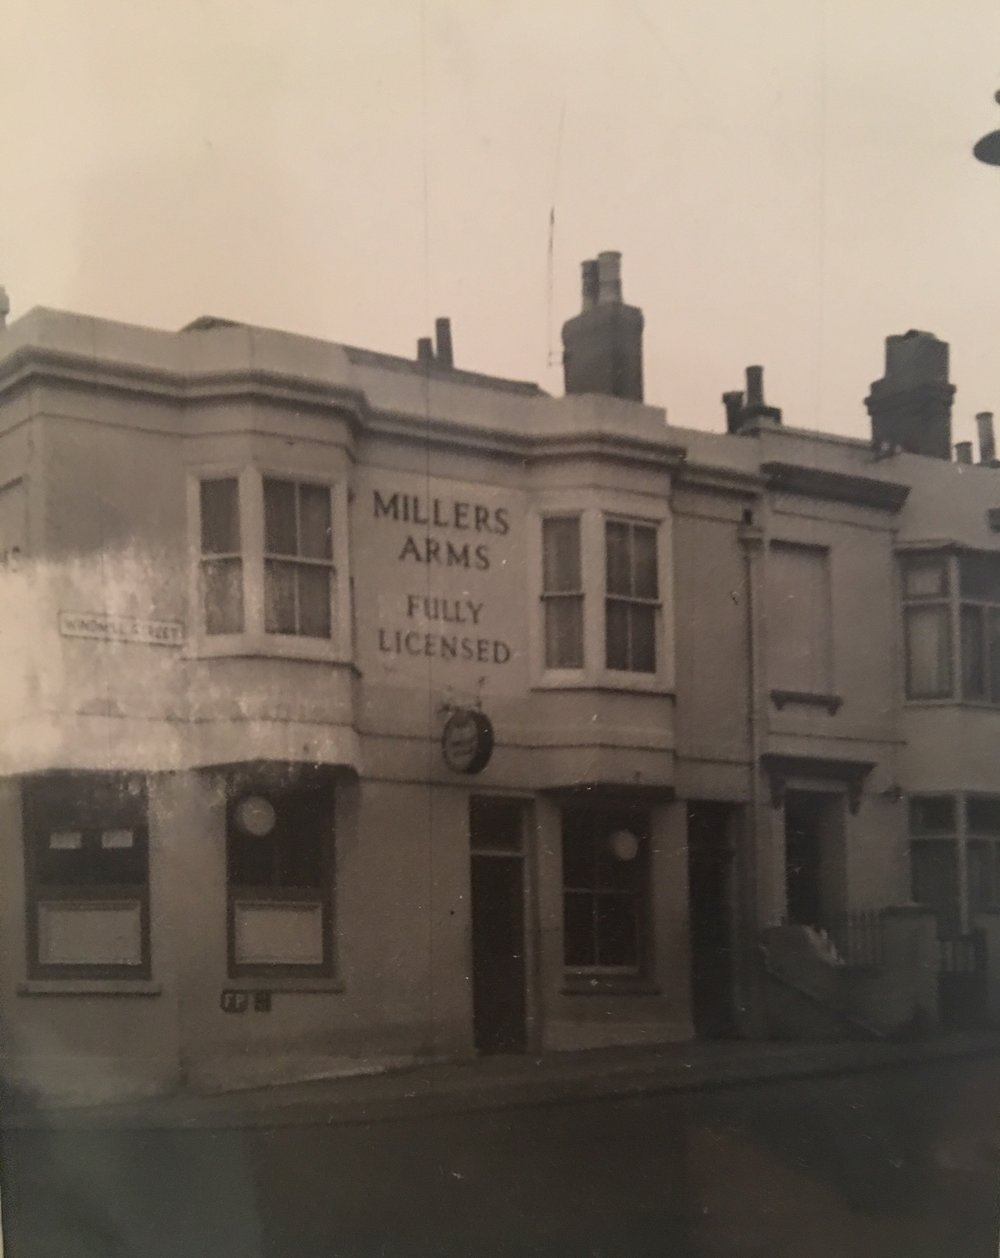 Setting sun known then as Millers Arms approx 1939